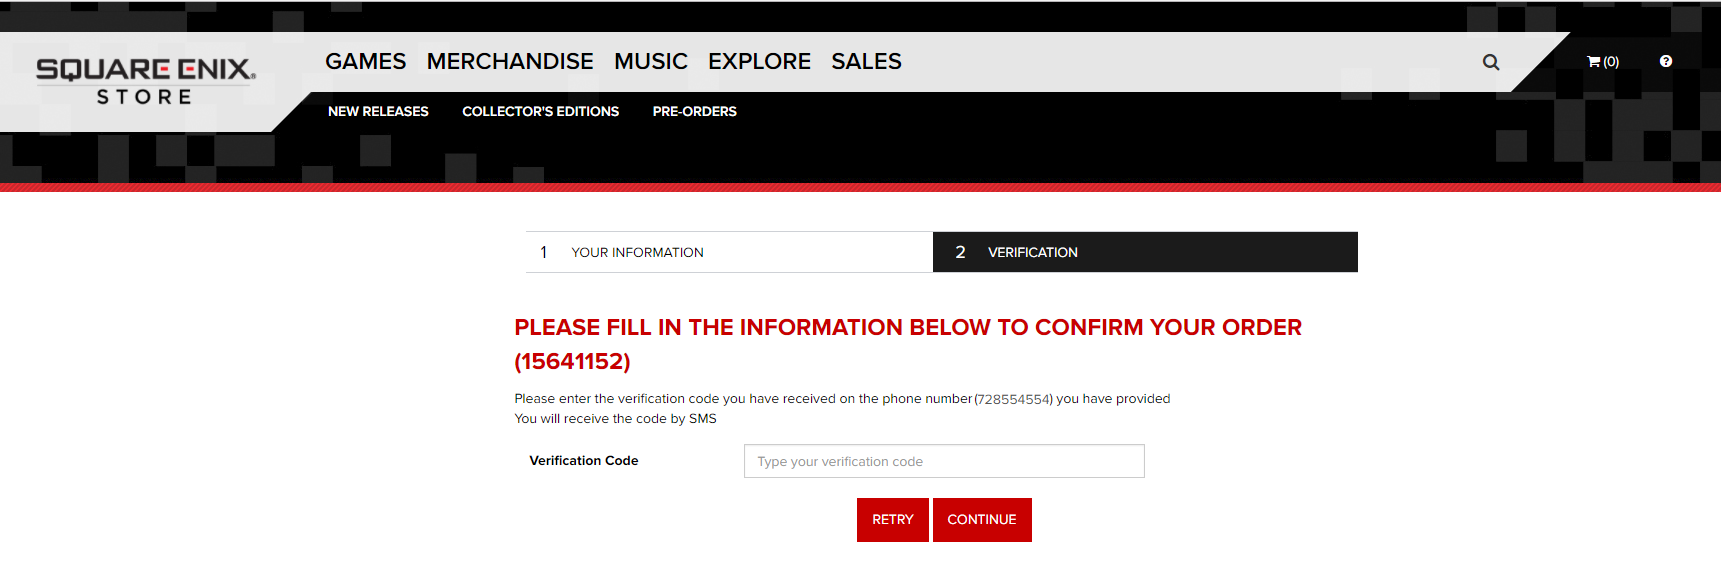 SMS Confirmation – SQUARE ENIX US STORE SUPPORT